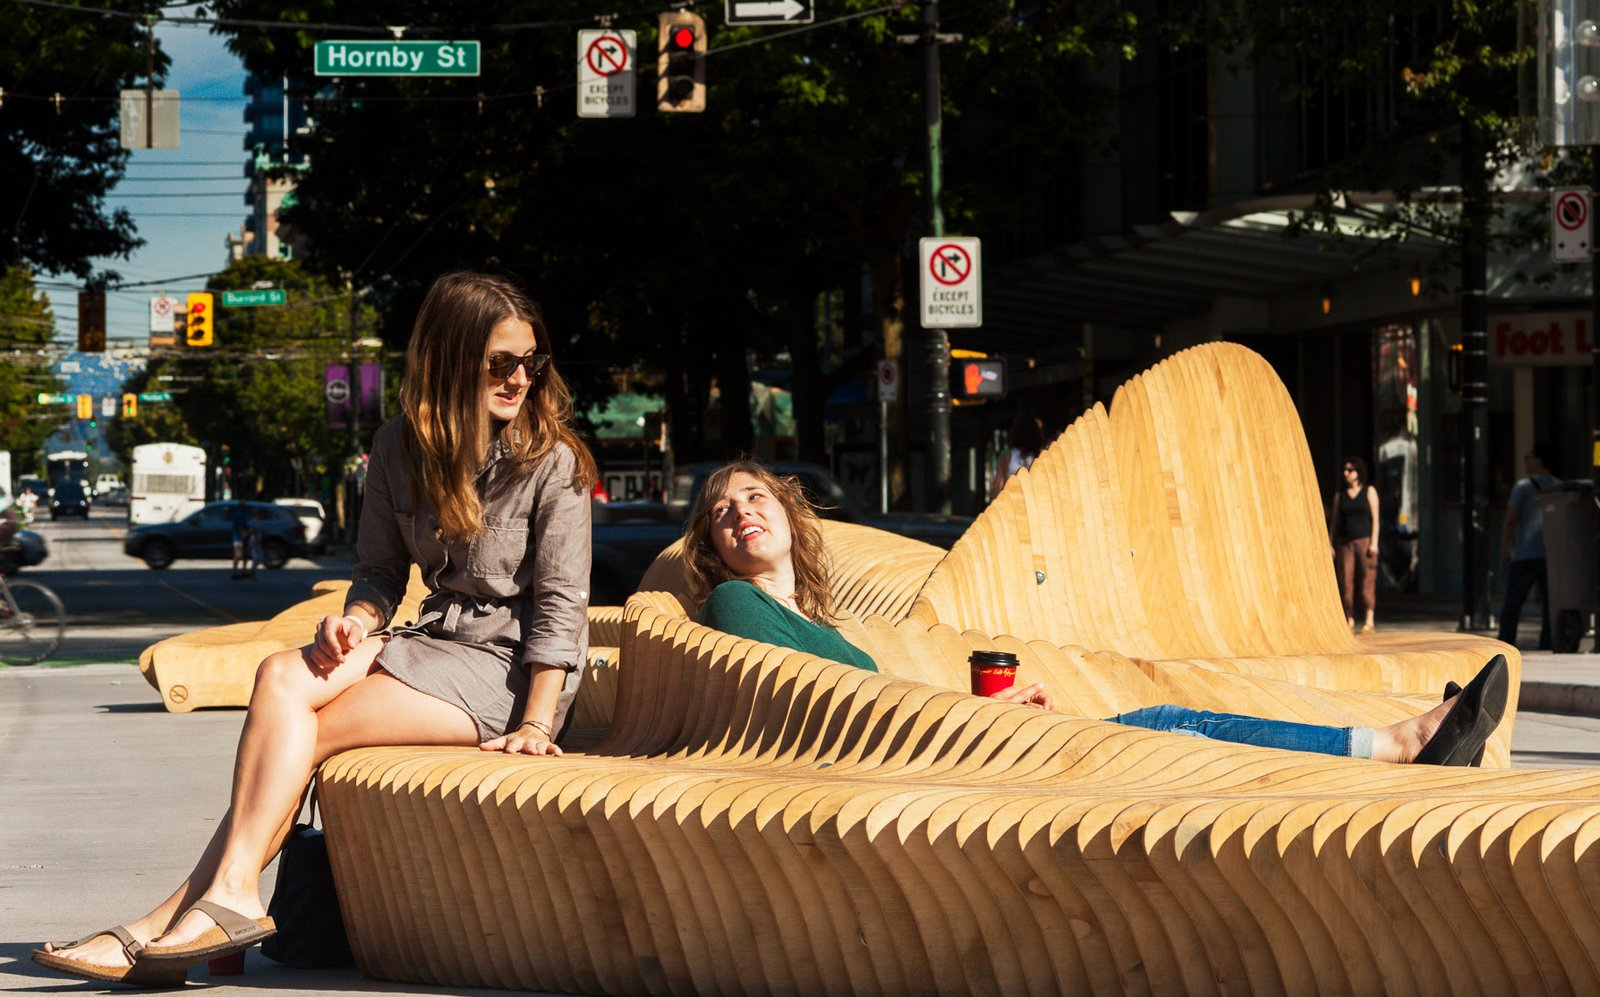 Kaz Bremner, Jeremiah Deutscher, Michael Siy, and Kenneth Navarra, a local team of architects, designers, and carpenters, created Urban Reef, which was selected as the winning design from among 78 entries.  100+ Best Modern Seating Designs from Cool Public Benches in Vancouver